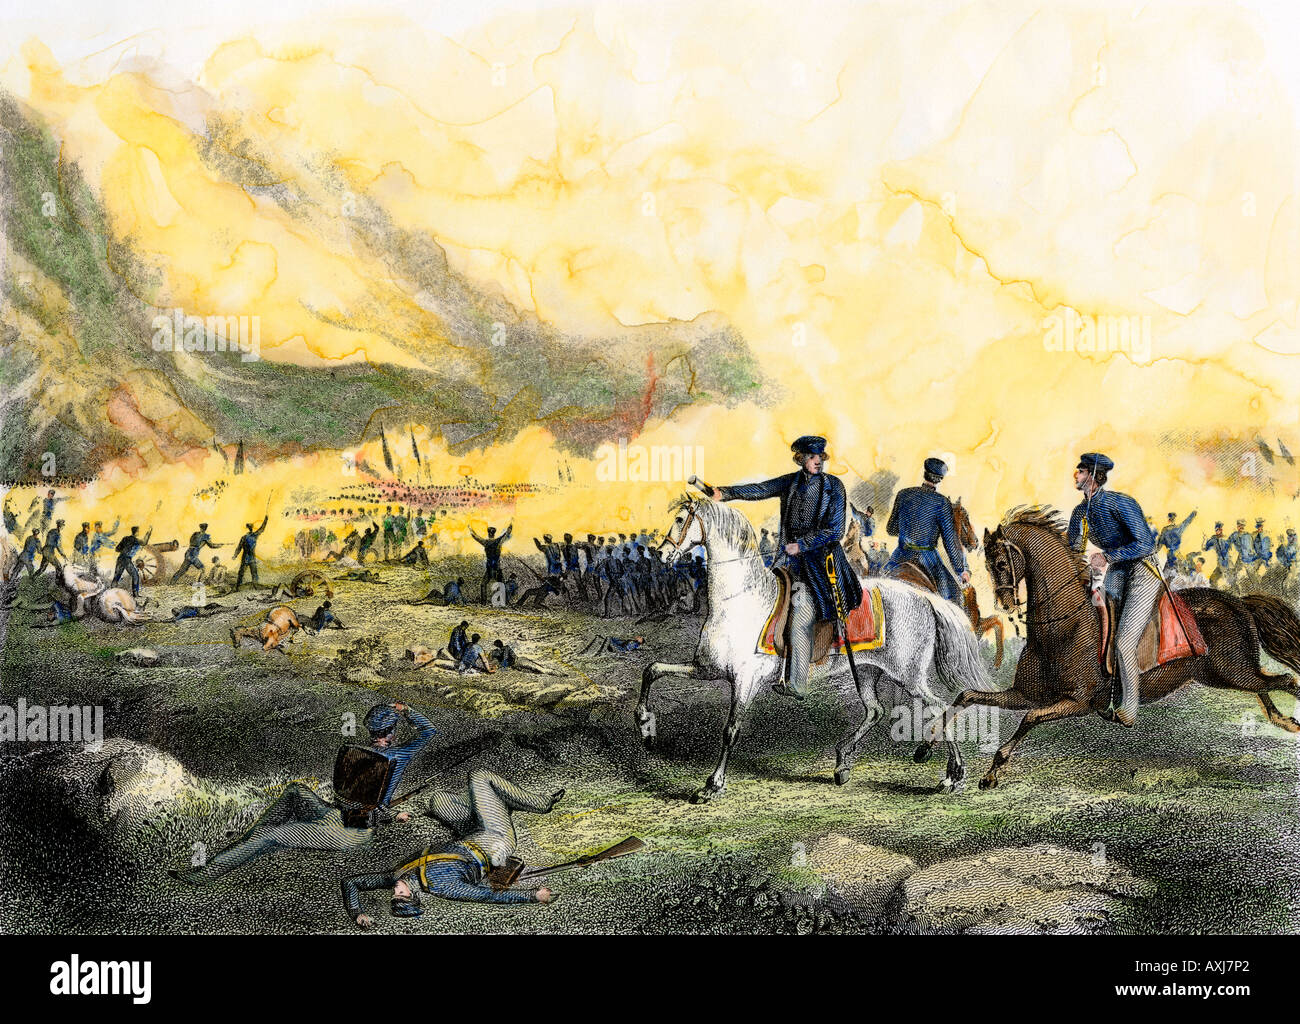 General Zachary Taylor commanding US troops against Mexican forces under Santa Ana at Buena Vista 1847. Hand-colored steel engraving - Stock Image